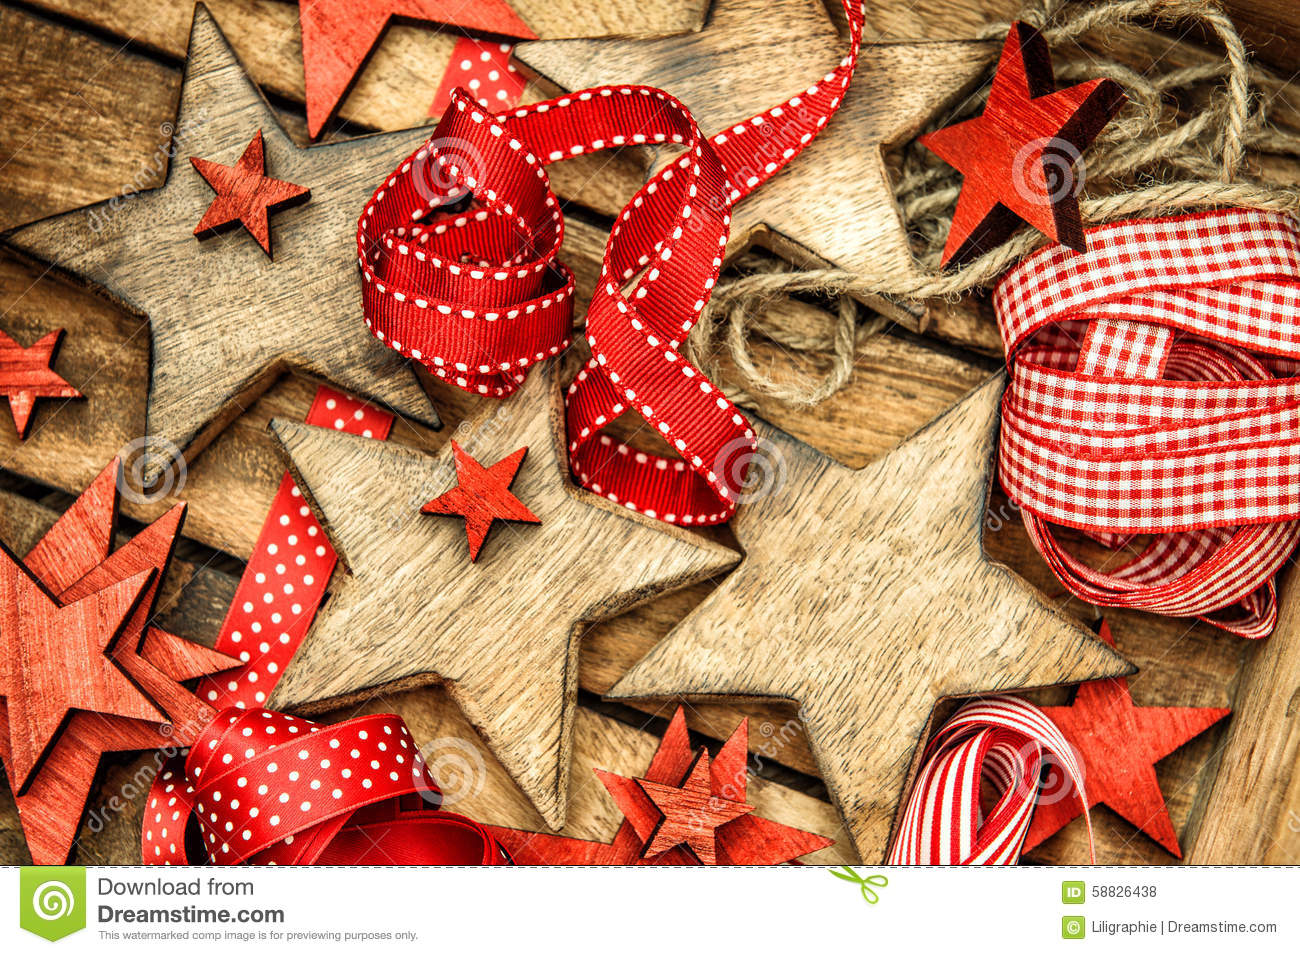 ... Christmas Decorations Gift Ornam Picture Red Retro. Download